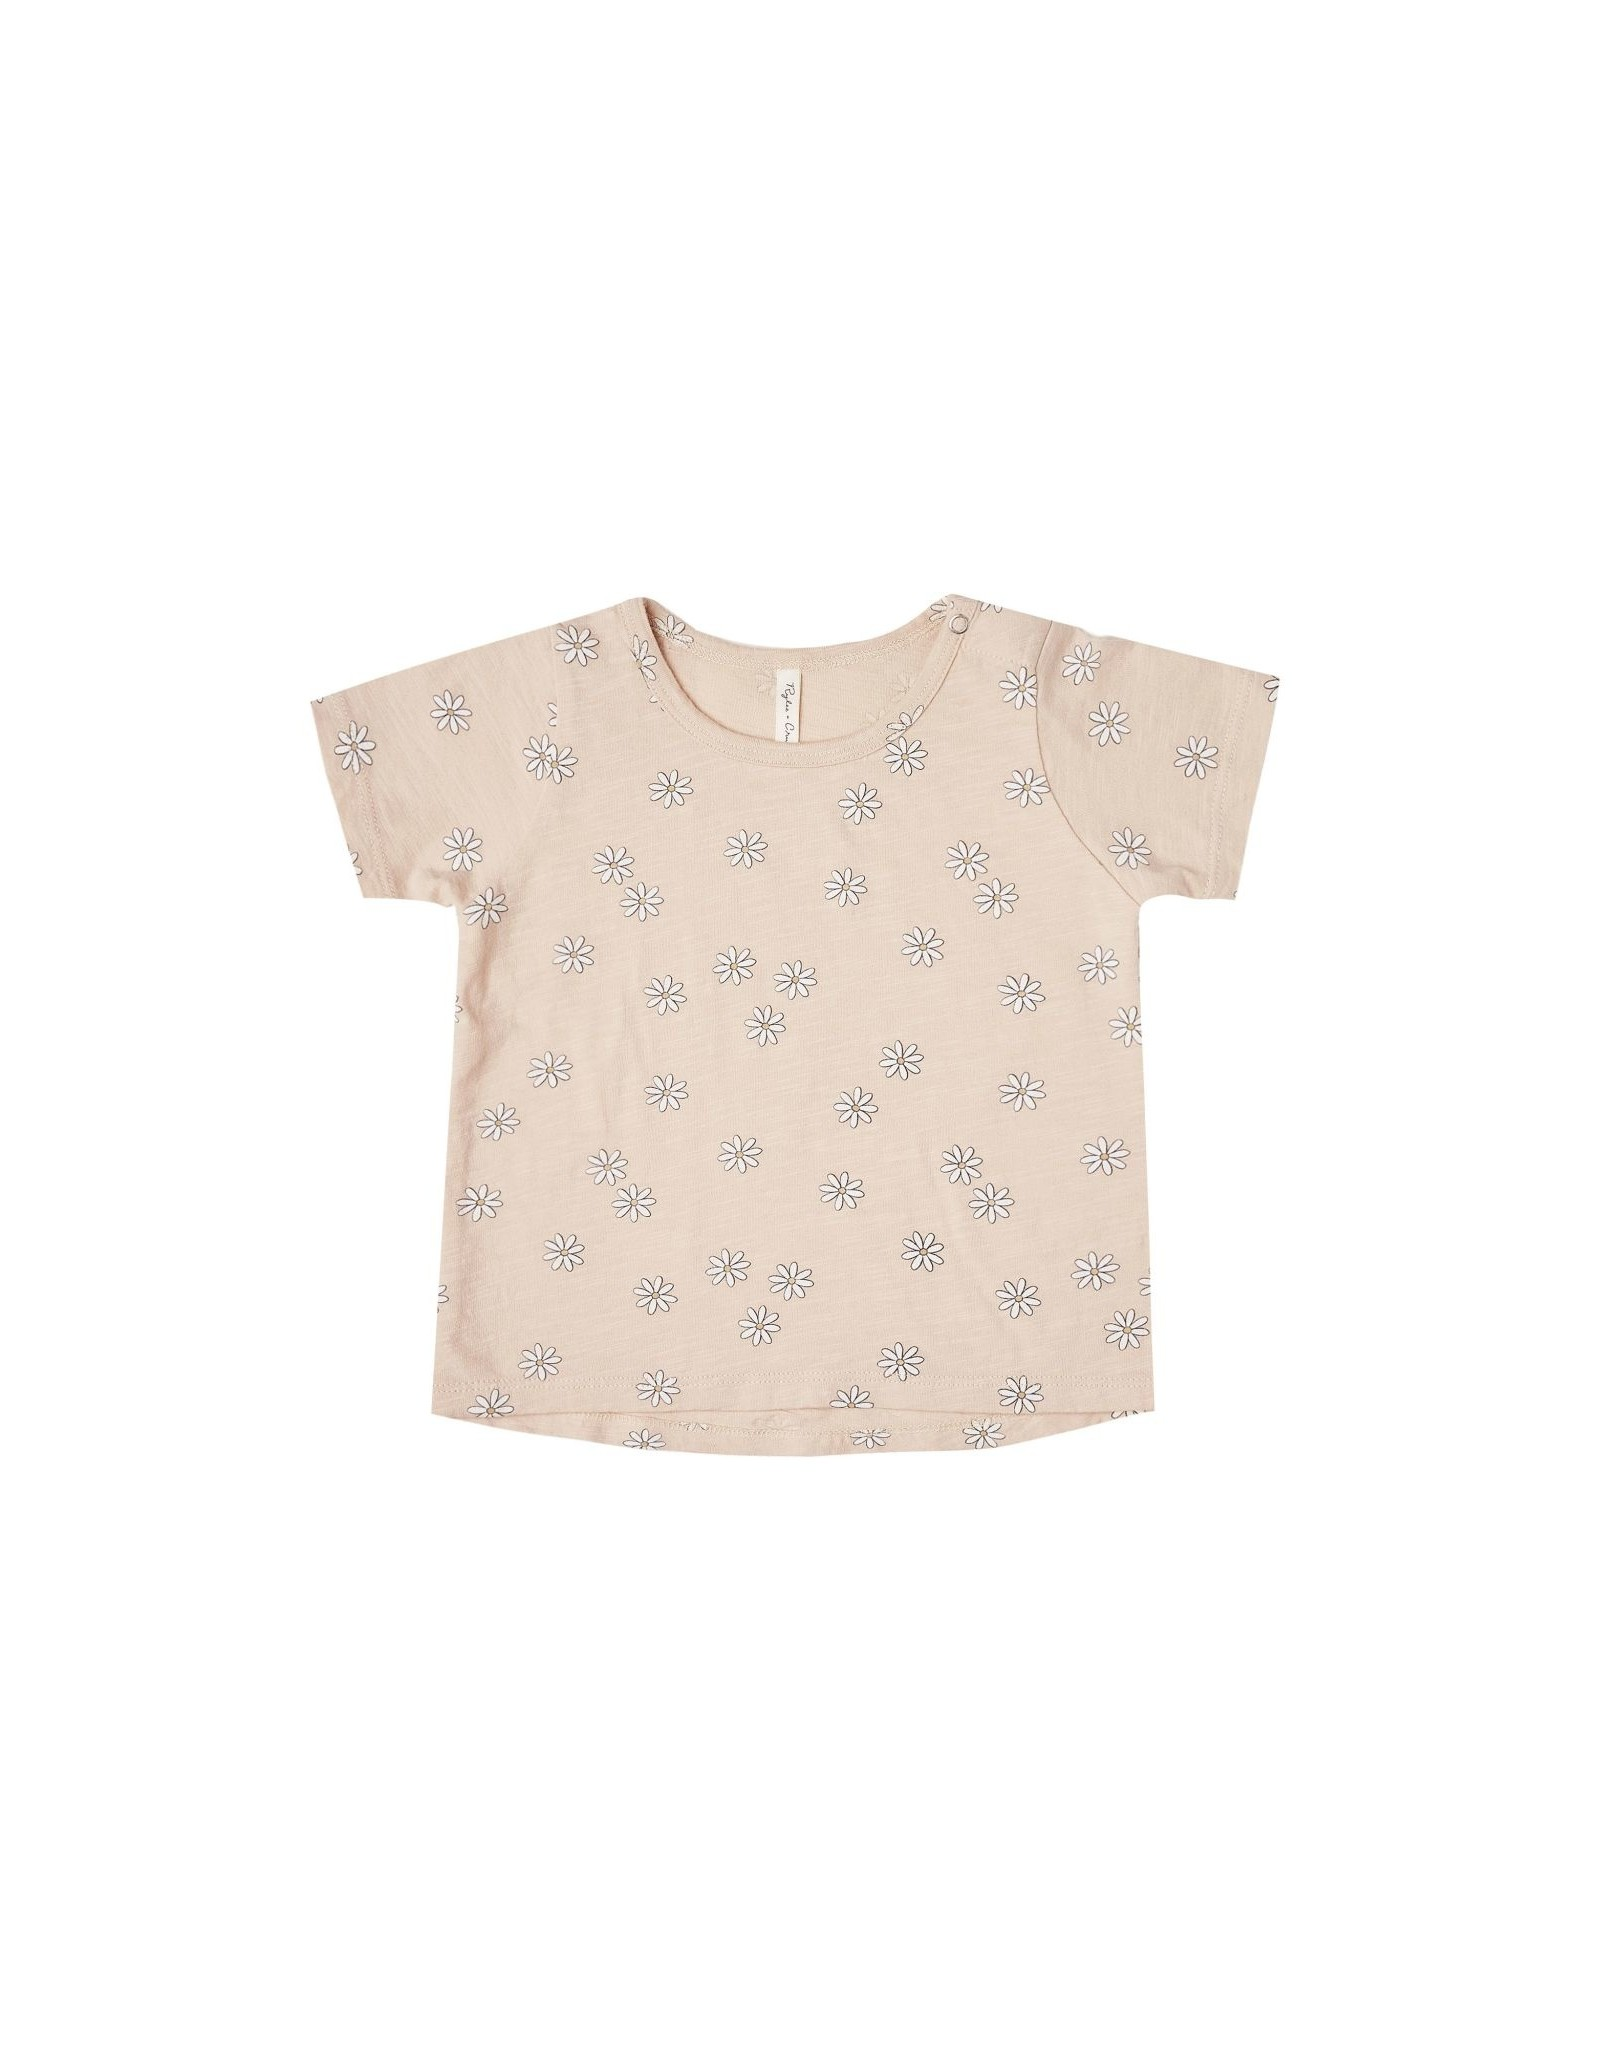 Rylee and Cru daisy confetti tee